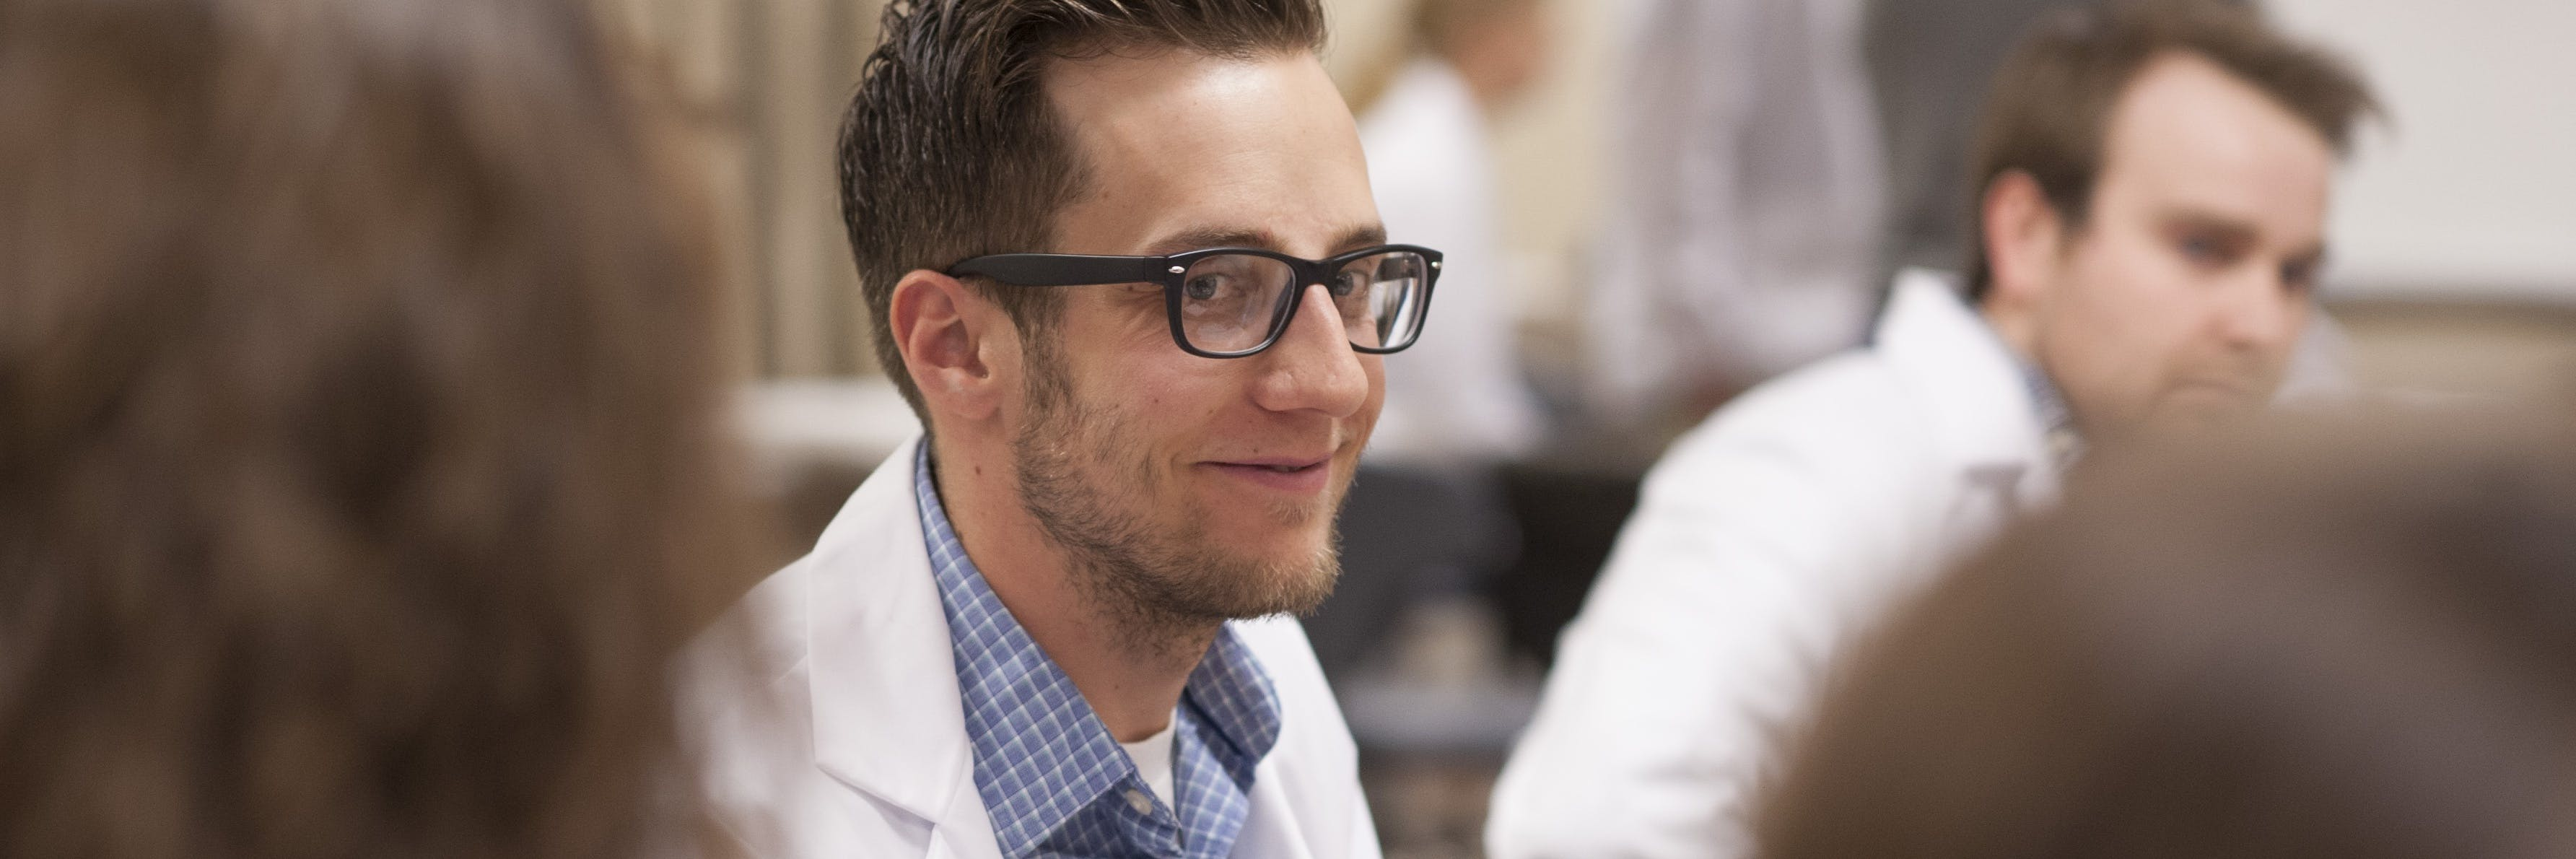 Physician Assistant student smiling